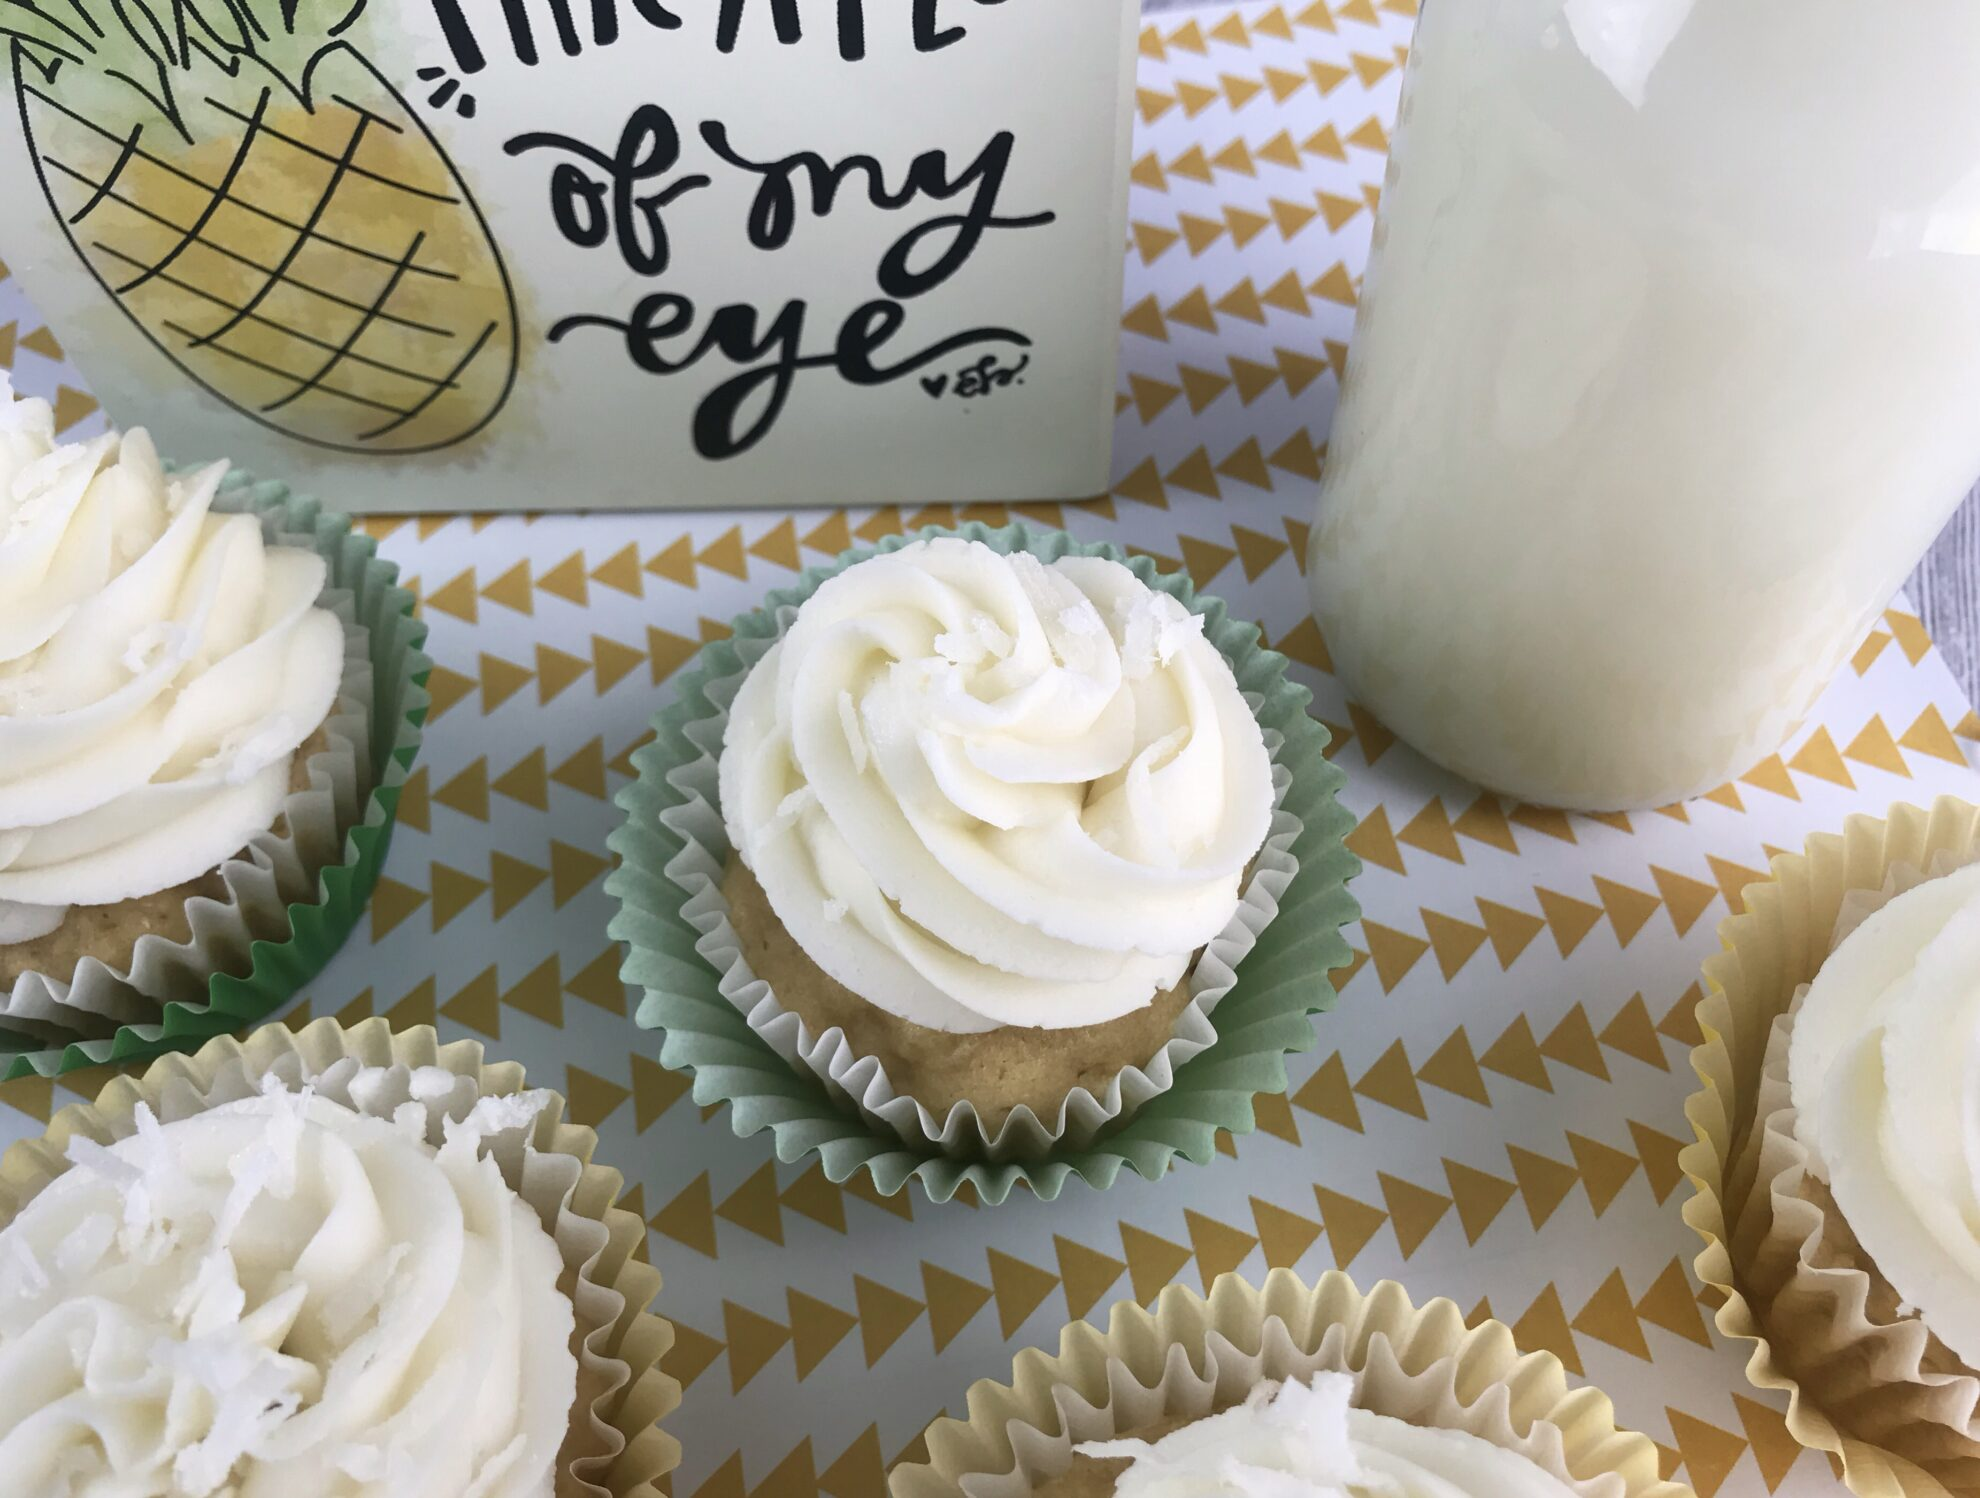 These Pineapple Cupcakes will whisk you away to the Tropics! The perfect refreshing dessert as a snack or for a birthday on 5DollarDinners!